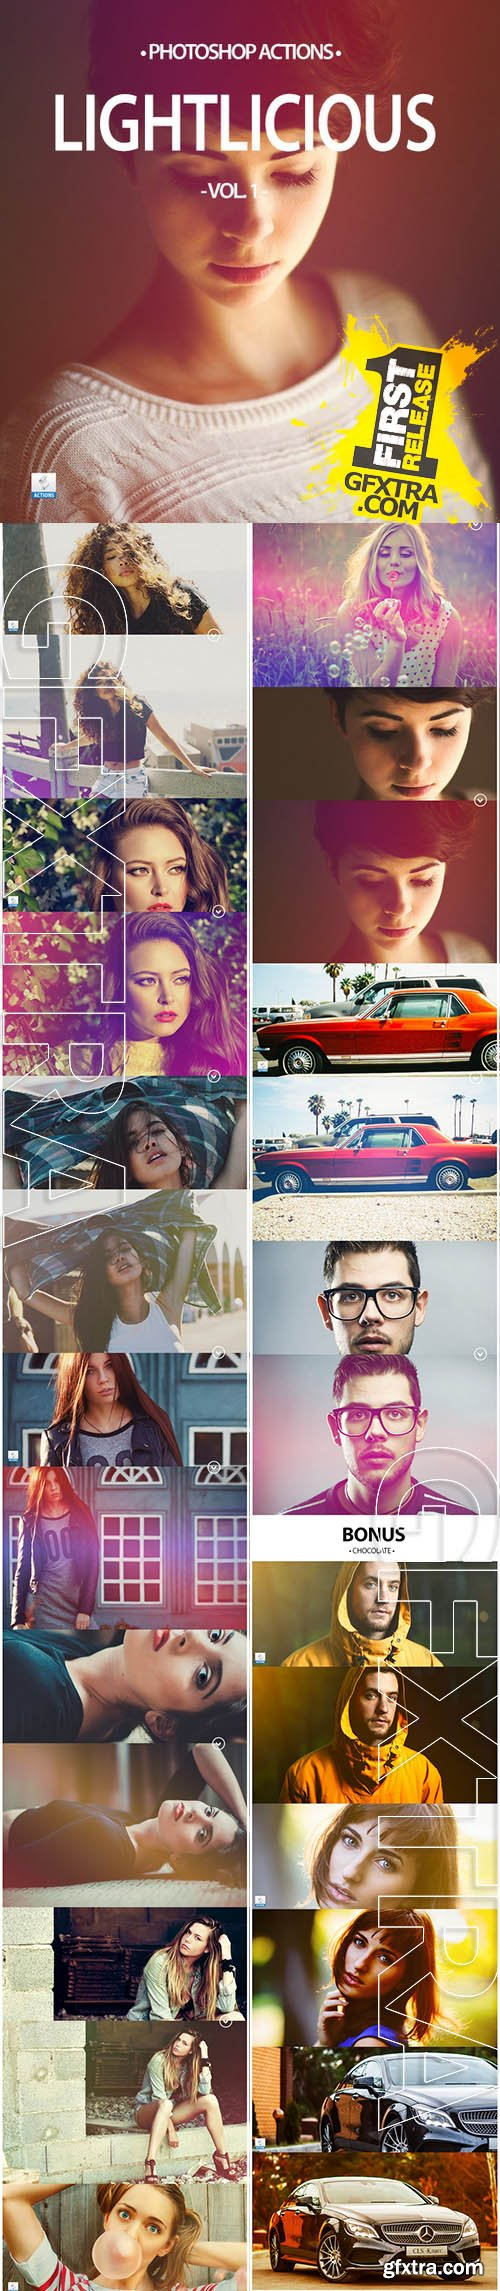 20+ Lightlicious - Photoshop Actions - CM 137507